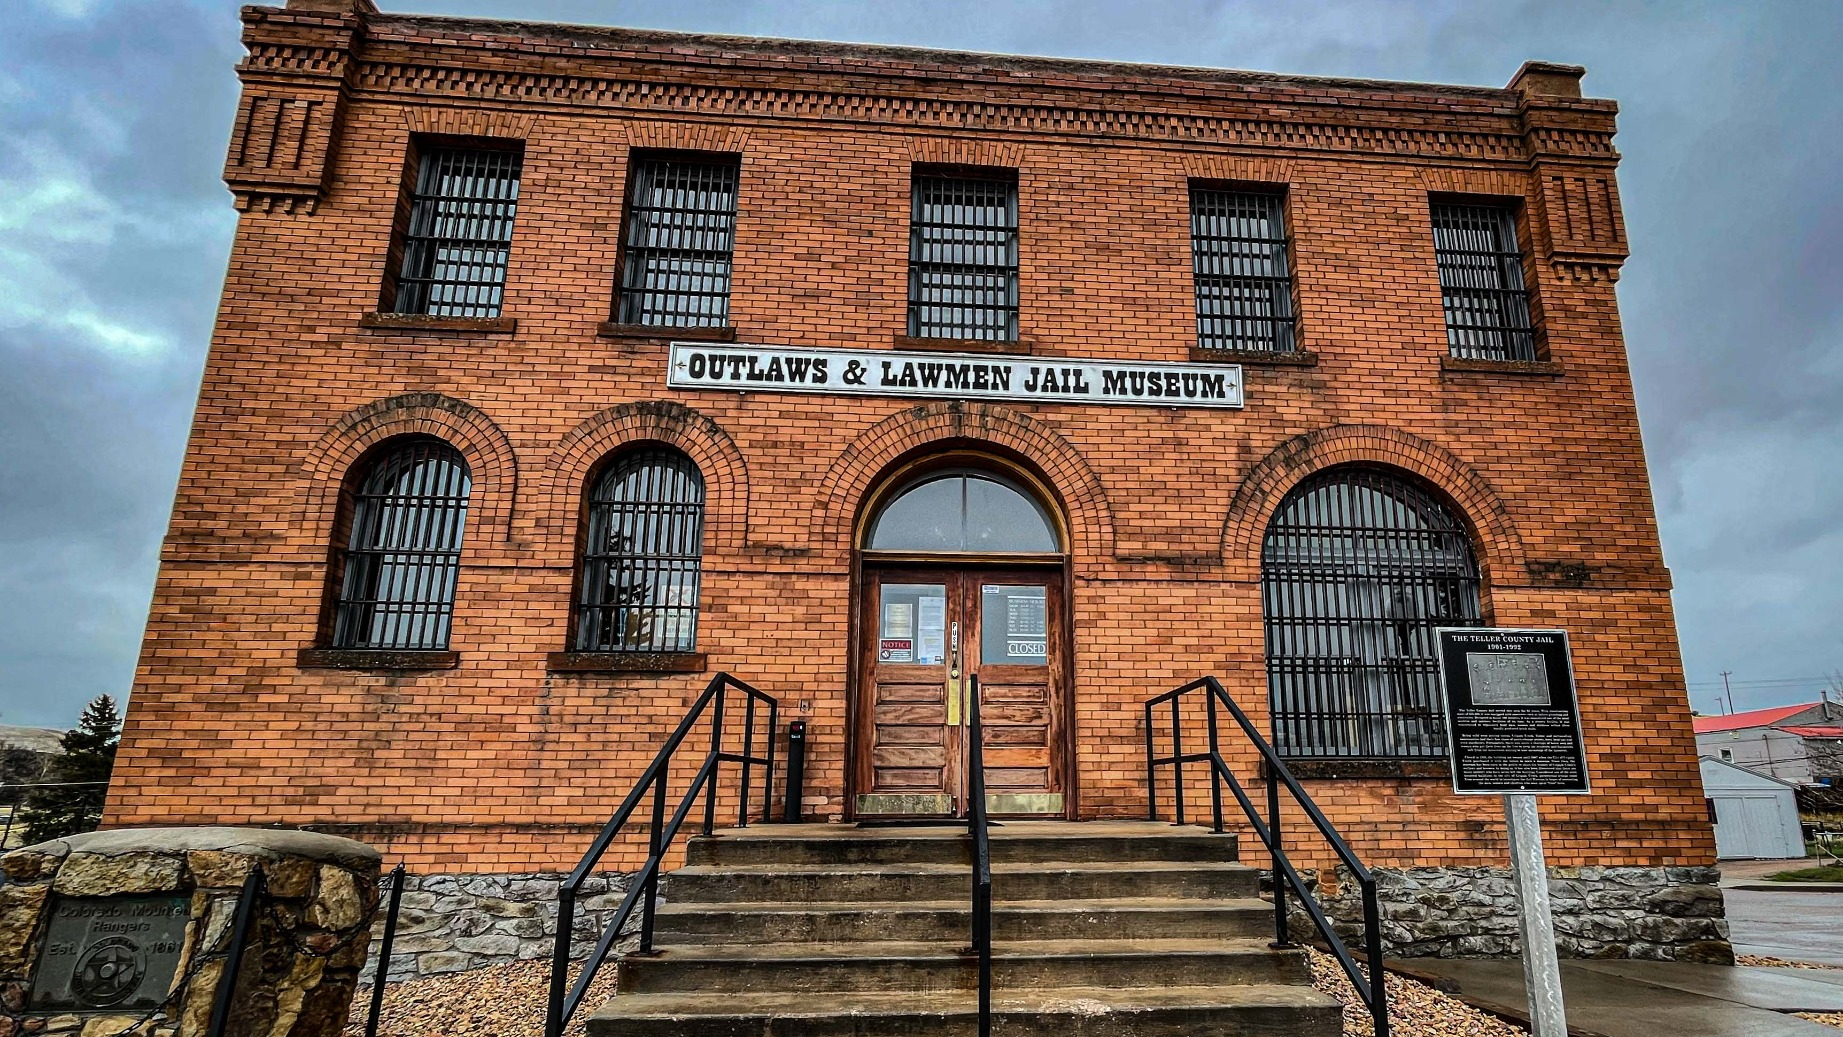 Outlaws And Lawmen Jail Museum Ghost Hunt  Cripple Creek, Colorado  Friday November 5th 2021